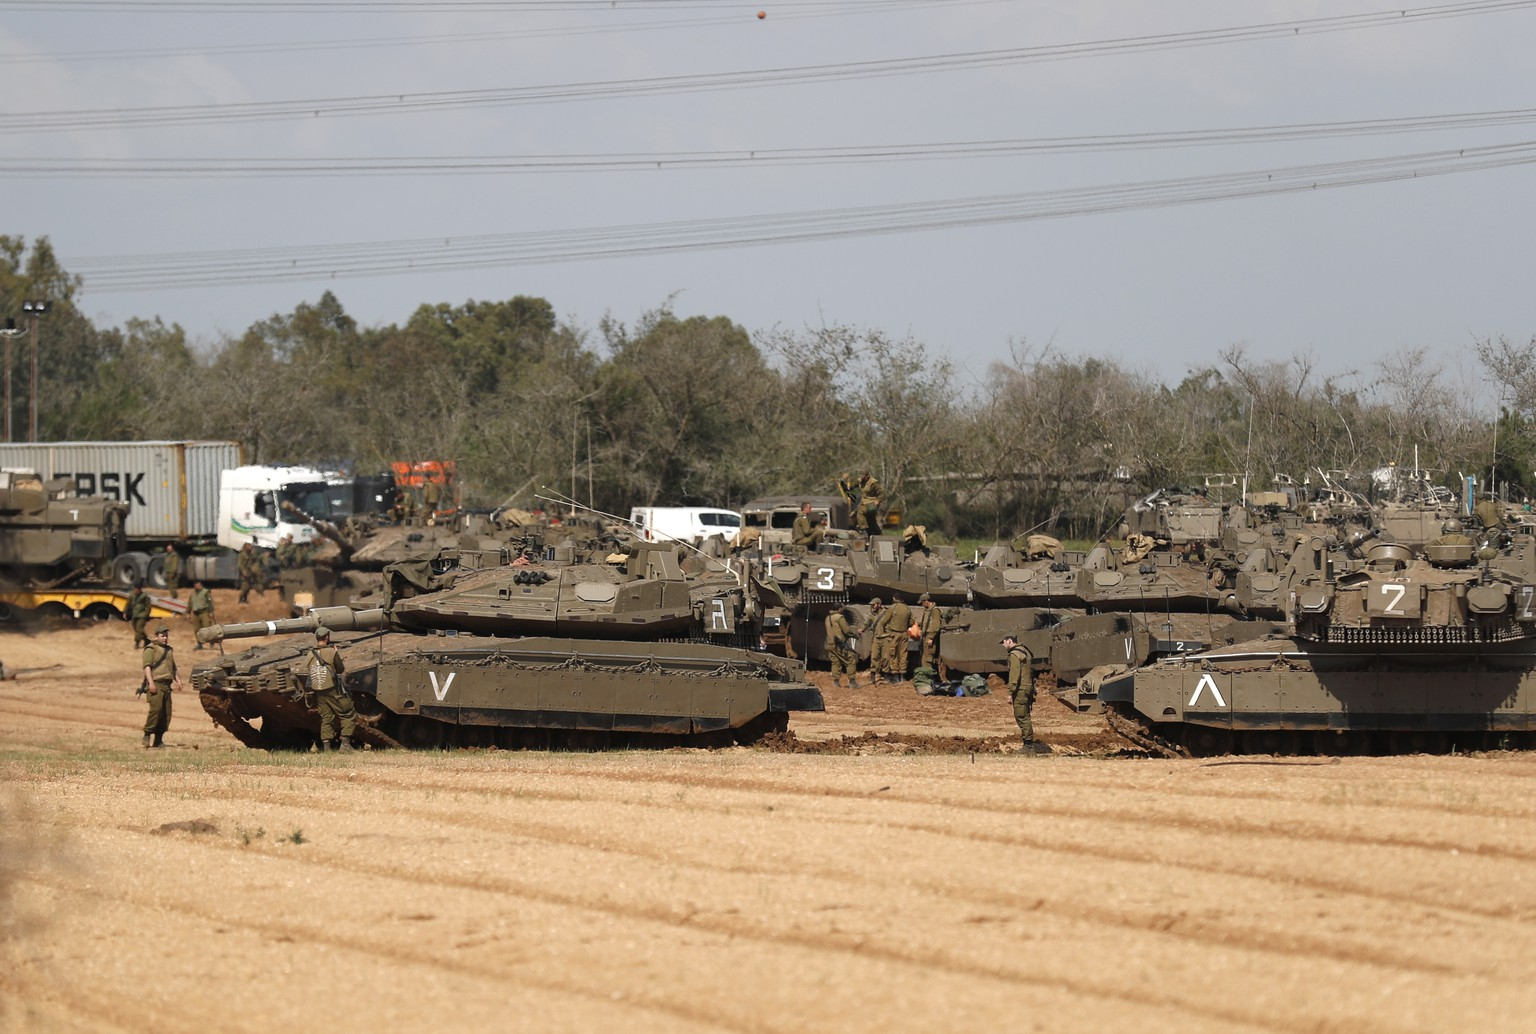 epa07464677 Israeli soldiers stand near their Merkava tanks and APCs, at a gathering point next to the border with Gaza, 26 March 2019. Israeli army is targeting Hamas militant installations in the Gaza Strip in response to a rocket fired from Gaza Strip that hit a house in central Israel.  EPA/ATEF SAFADI